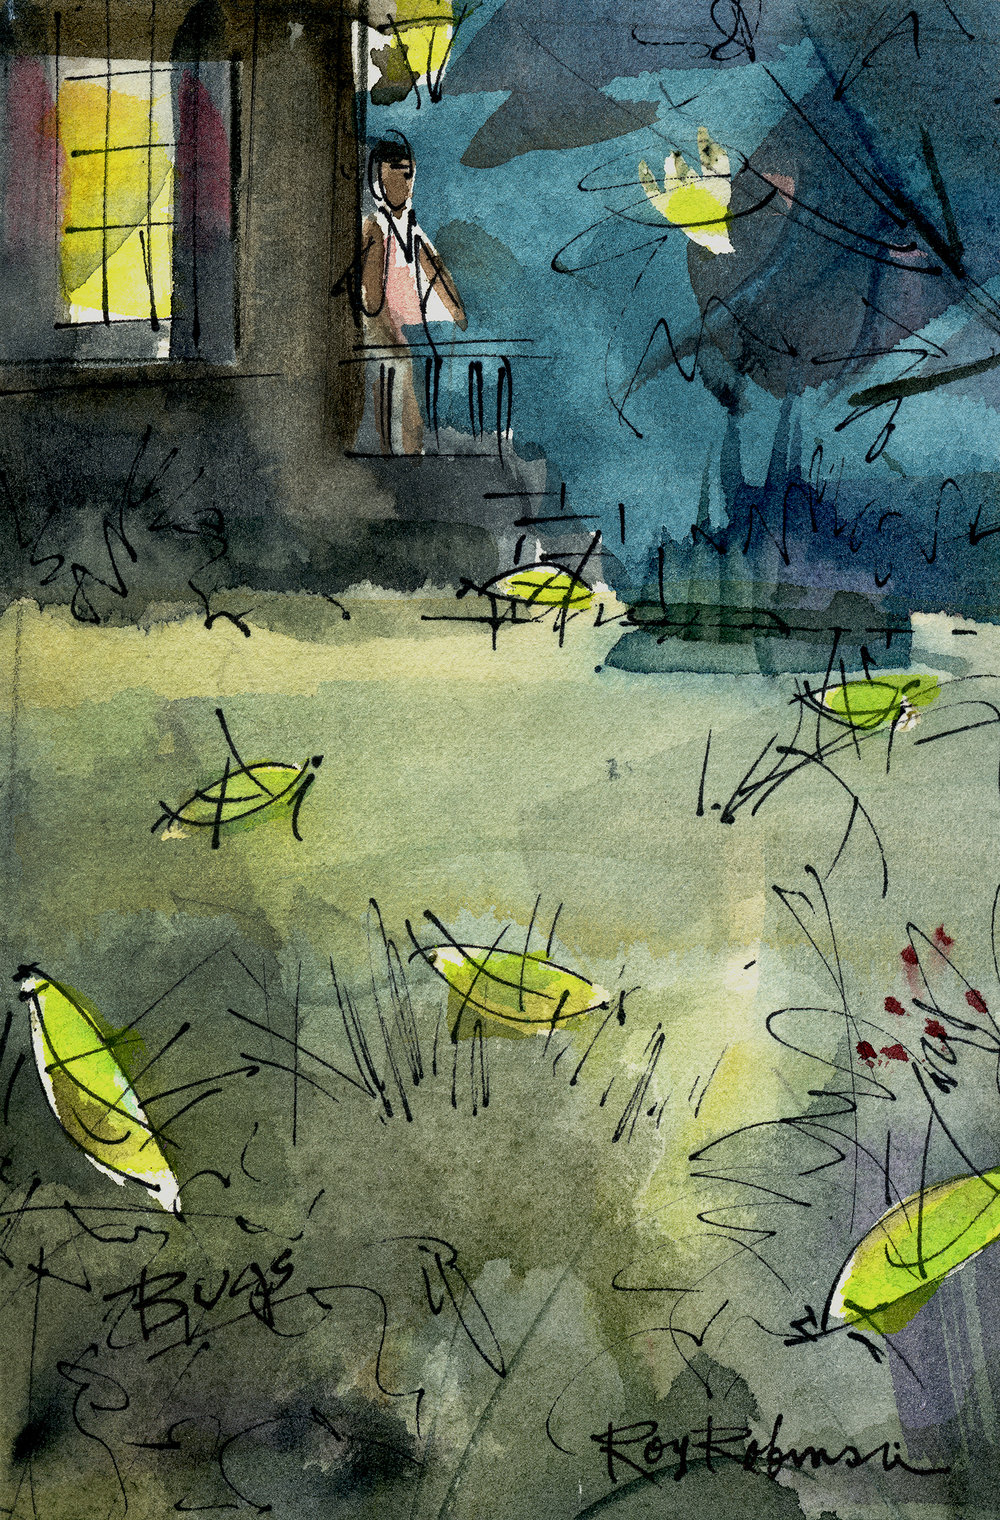 COMING SOON:Roy RobinsonRetrospective - Honoring the long life and fanciful illustrationsof an Abita Springs artistOpening ReceptionDecember 8, 6-9pm